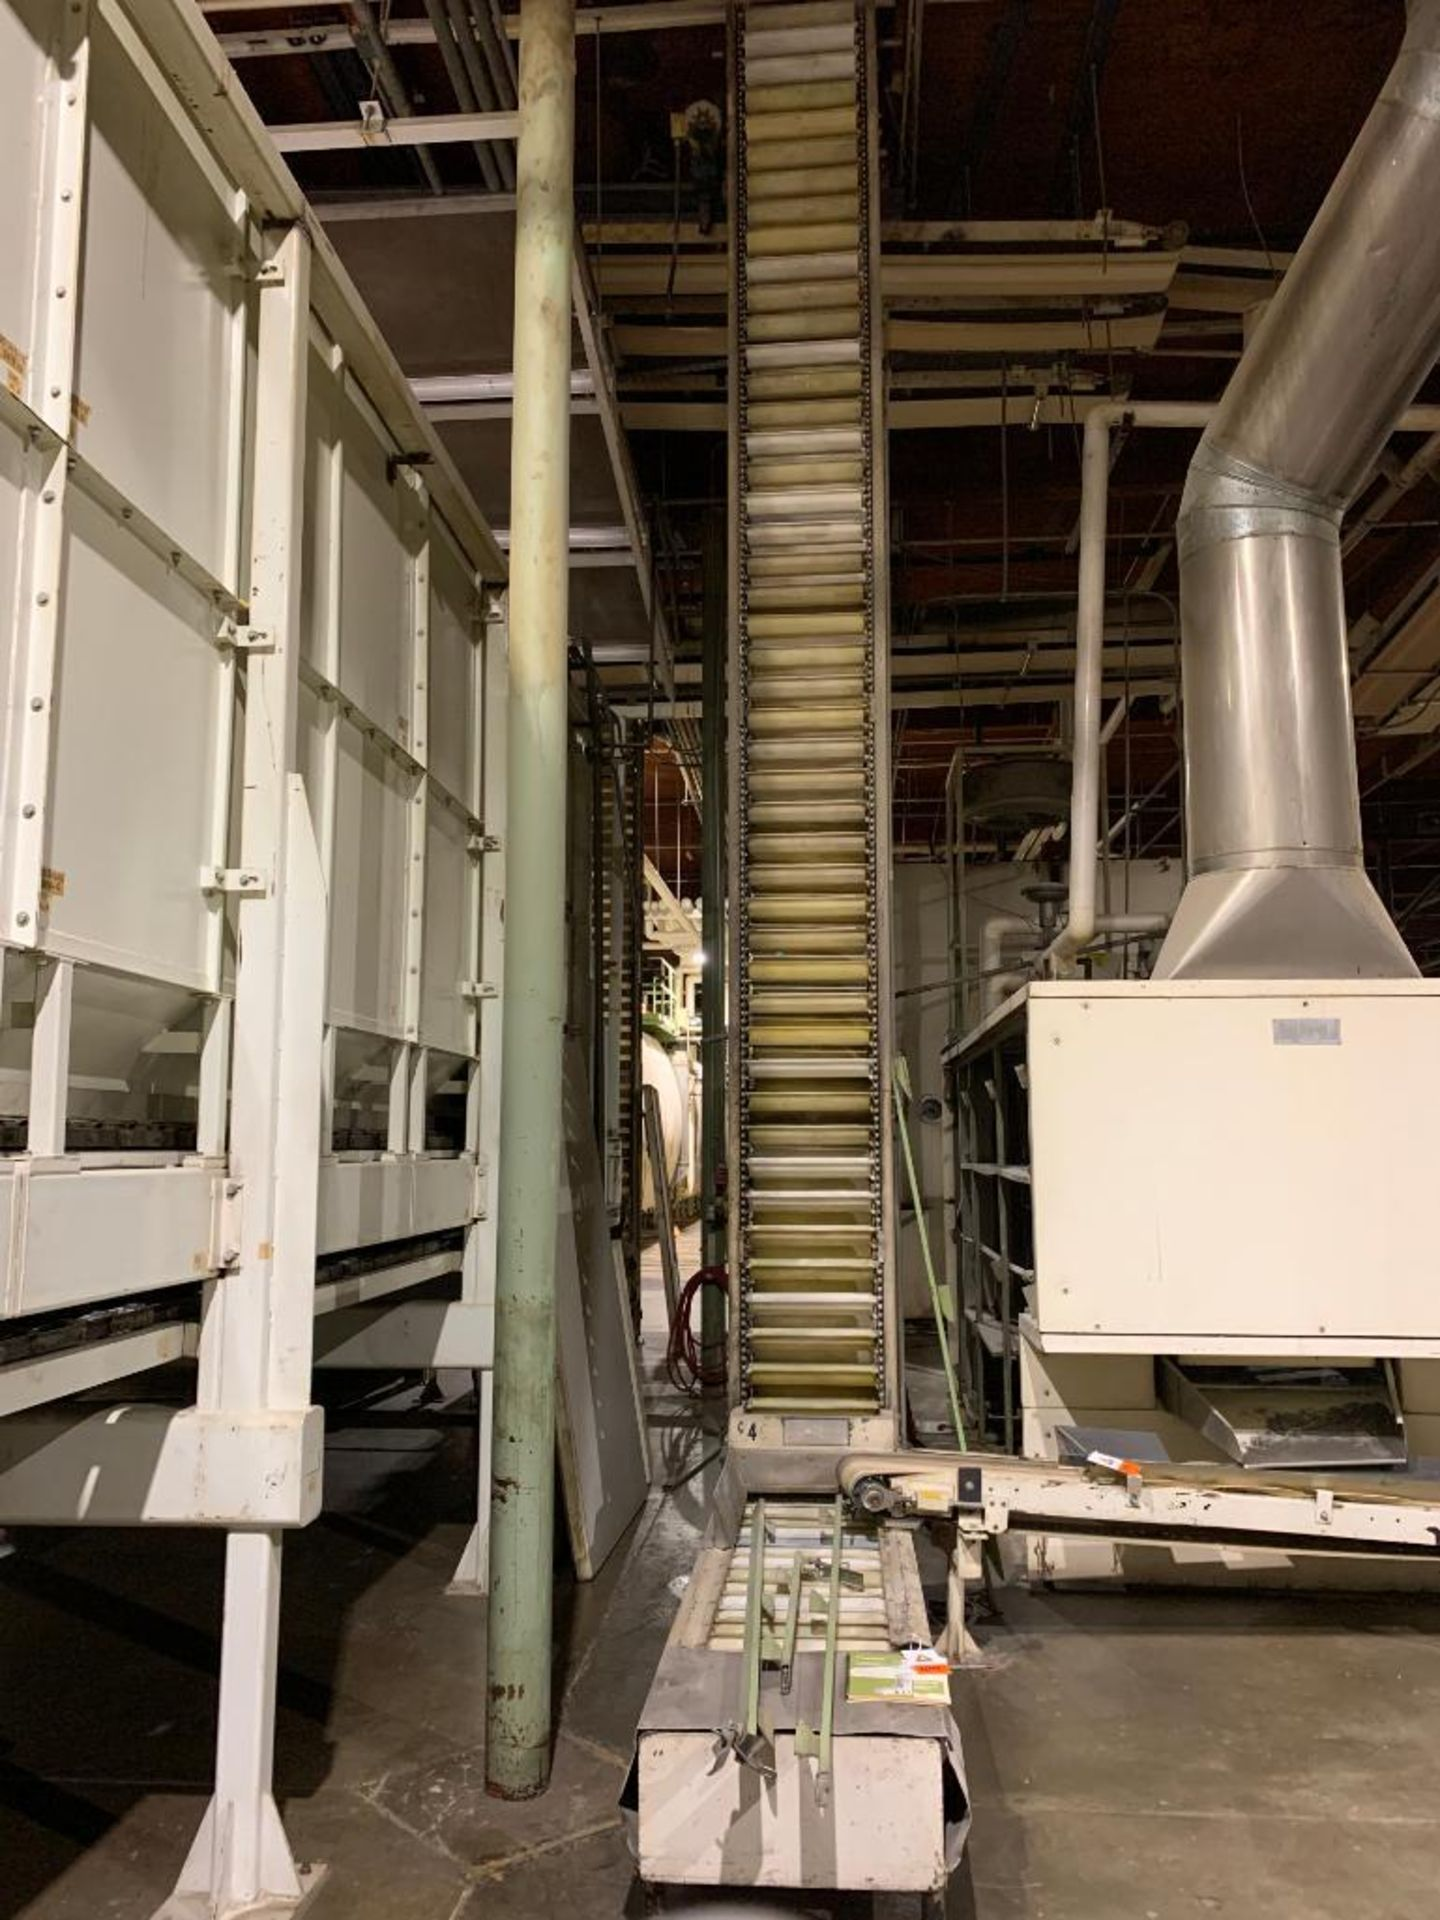 Aseeco overlapping bucket elevator, model ALS-0-18-CP - Image 4 of 12